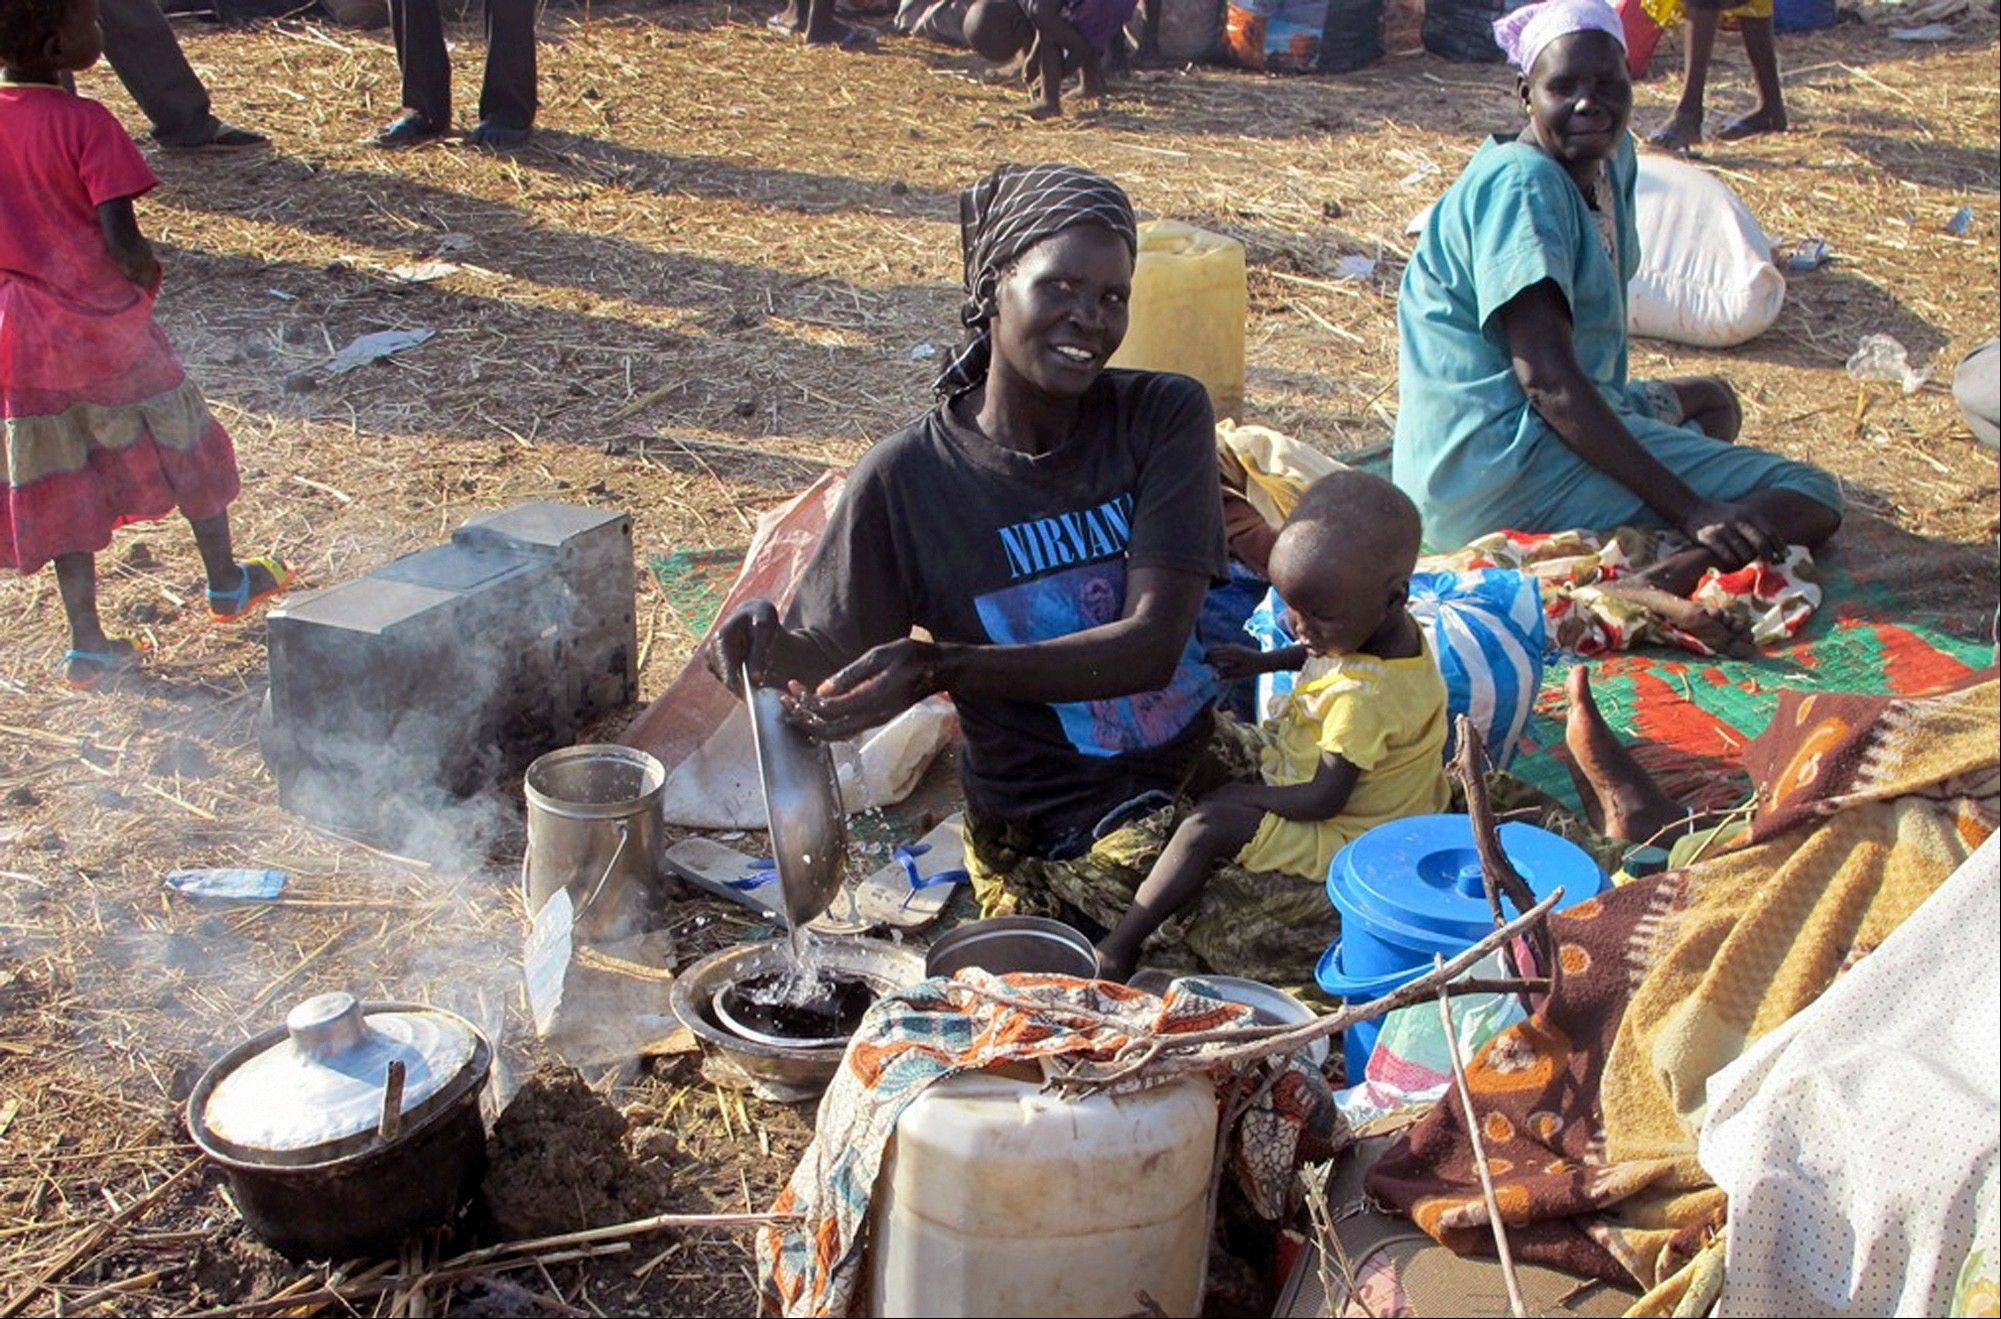 In this photo taken Sunday, displaced people take shelter in the U.N. compound where they get assistance from the World Food Program, in Bentiu, the capital of the oil-producing Unity state, in South Sudan.